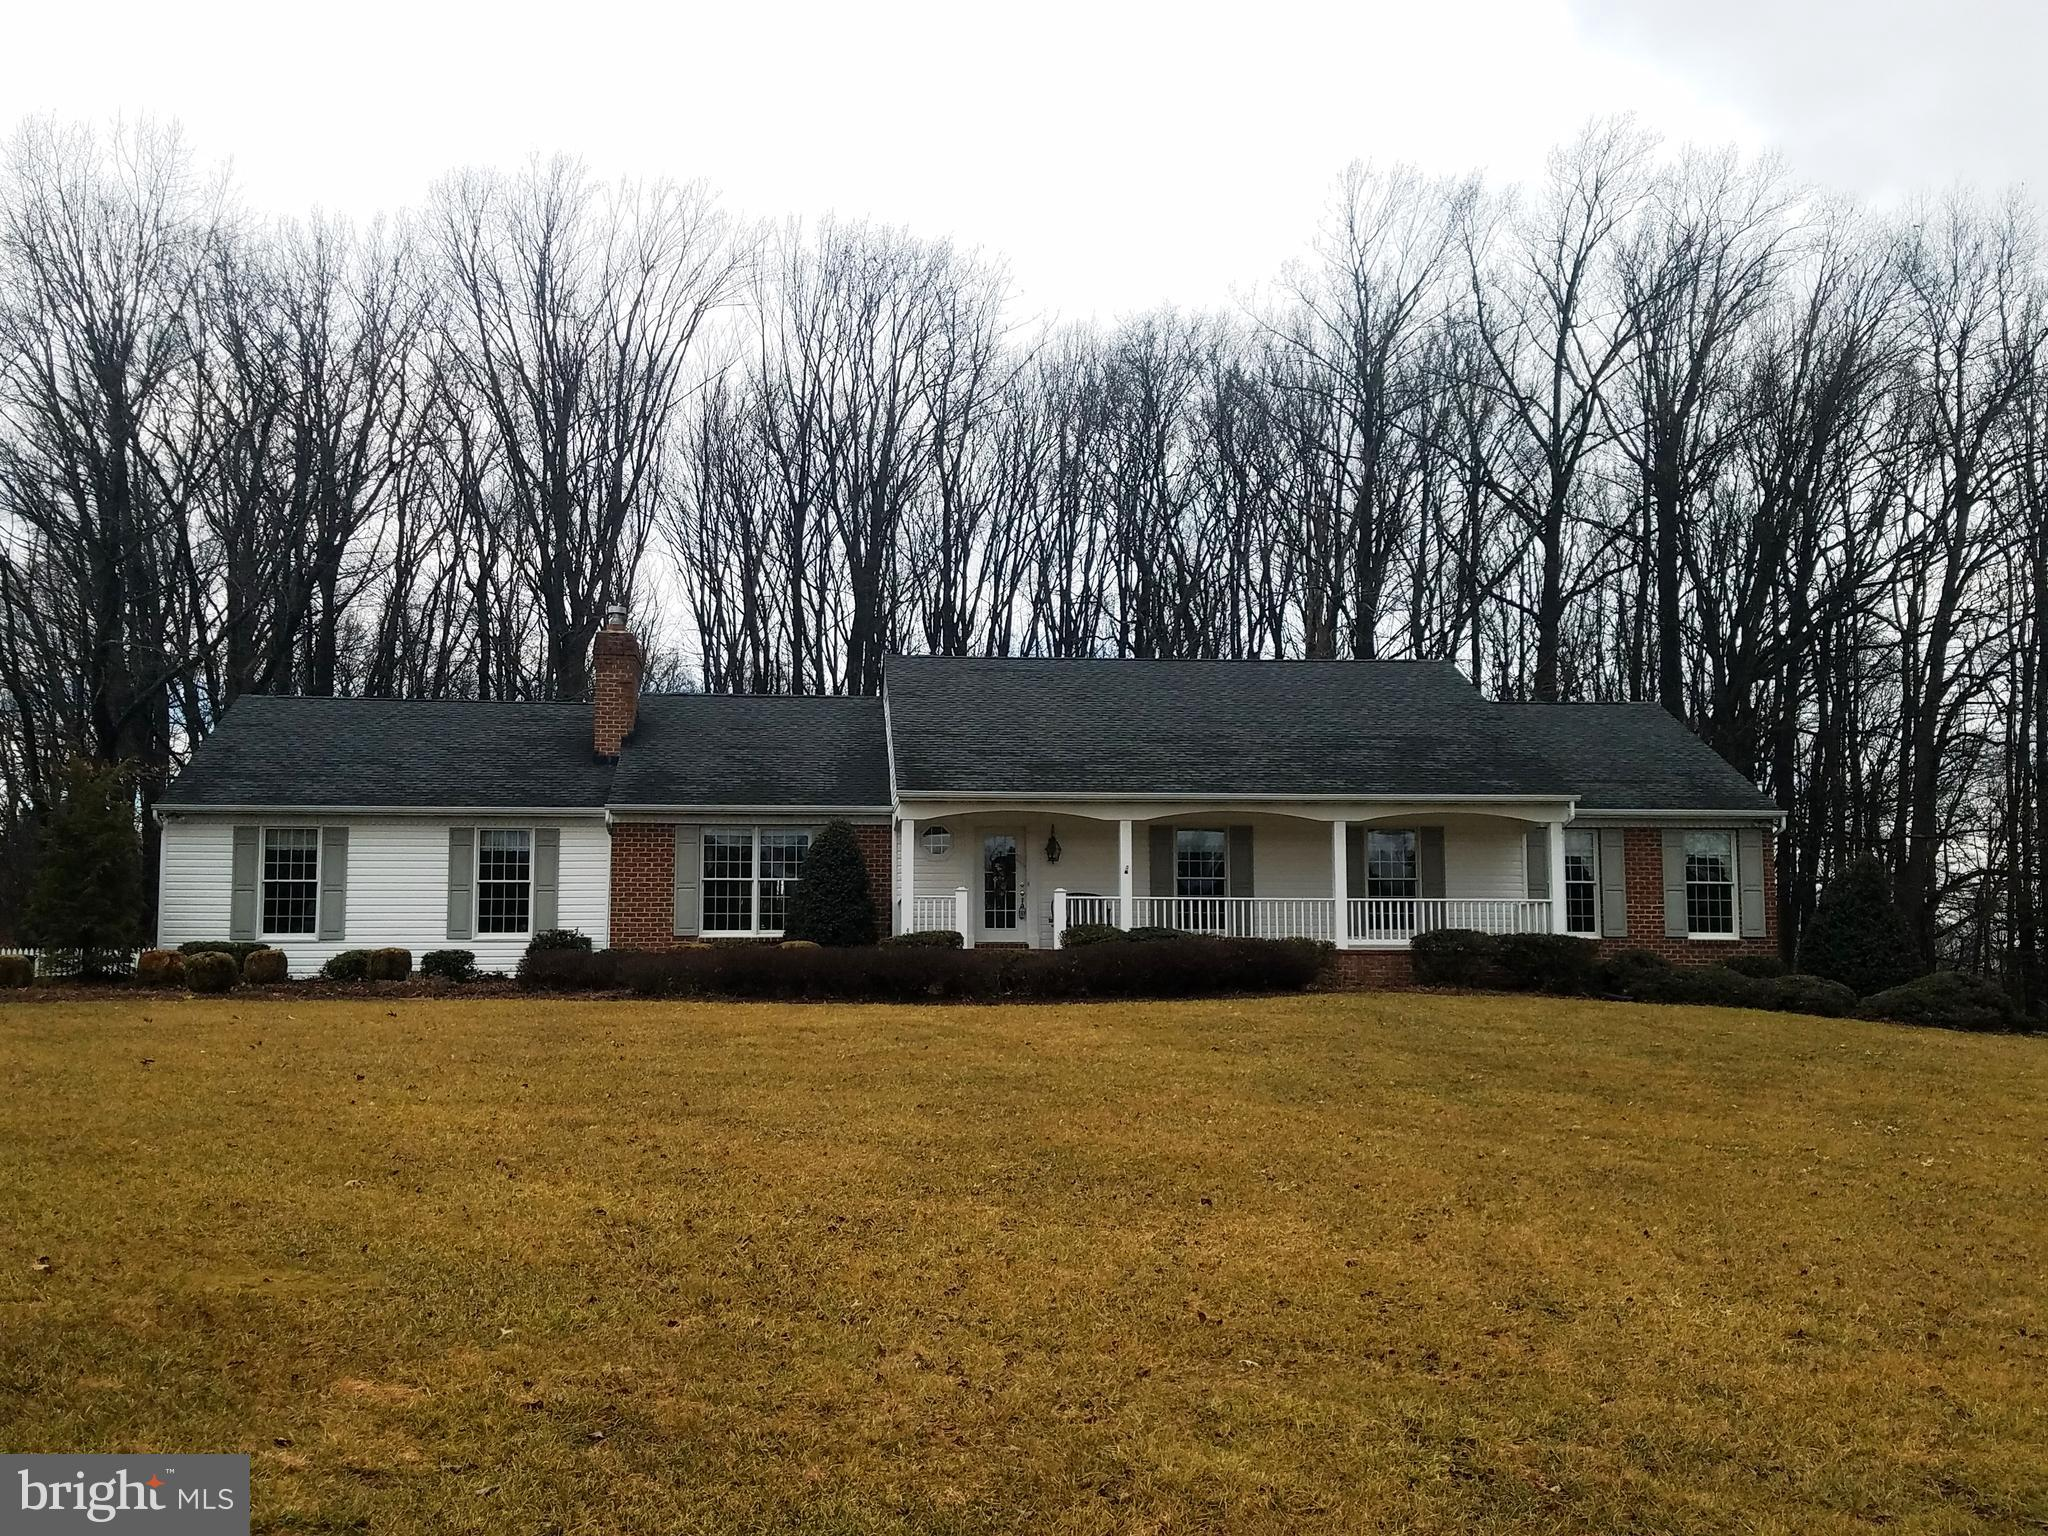 2863 TROYER ROAD, WHITE HALL, MD 21161